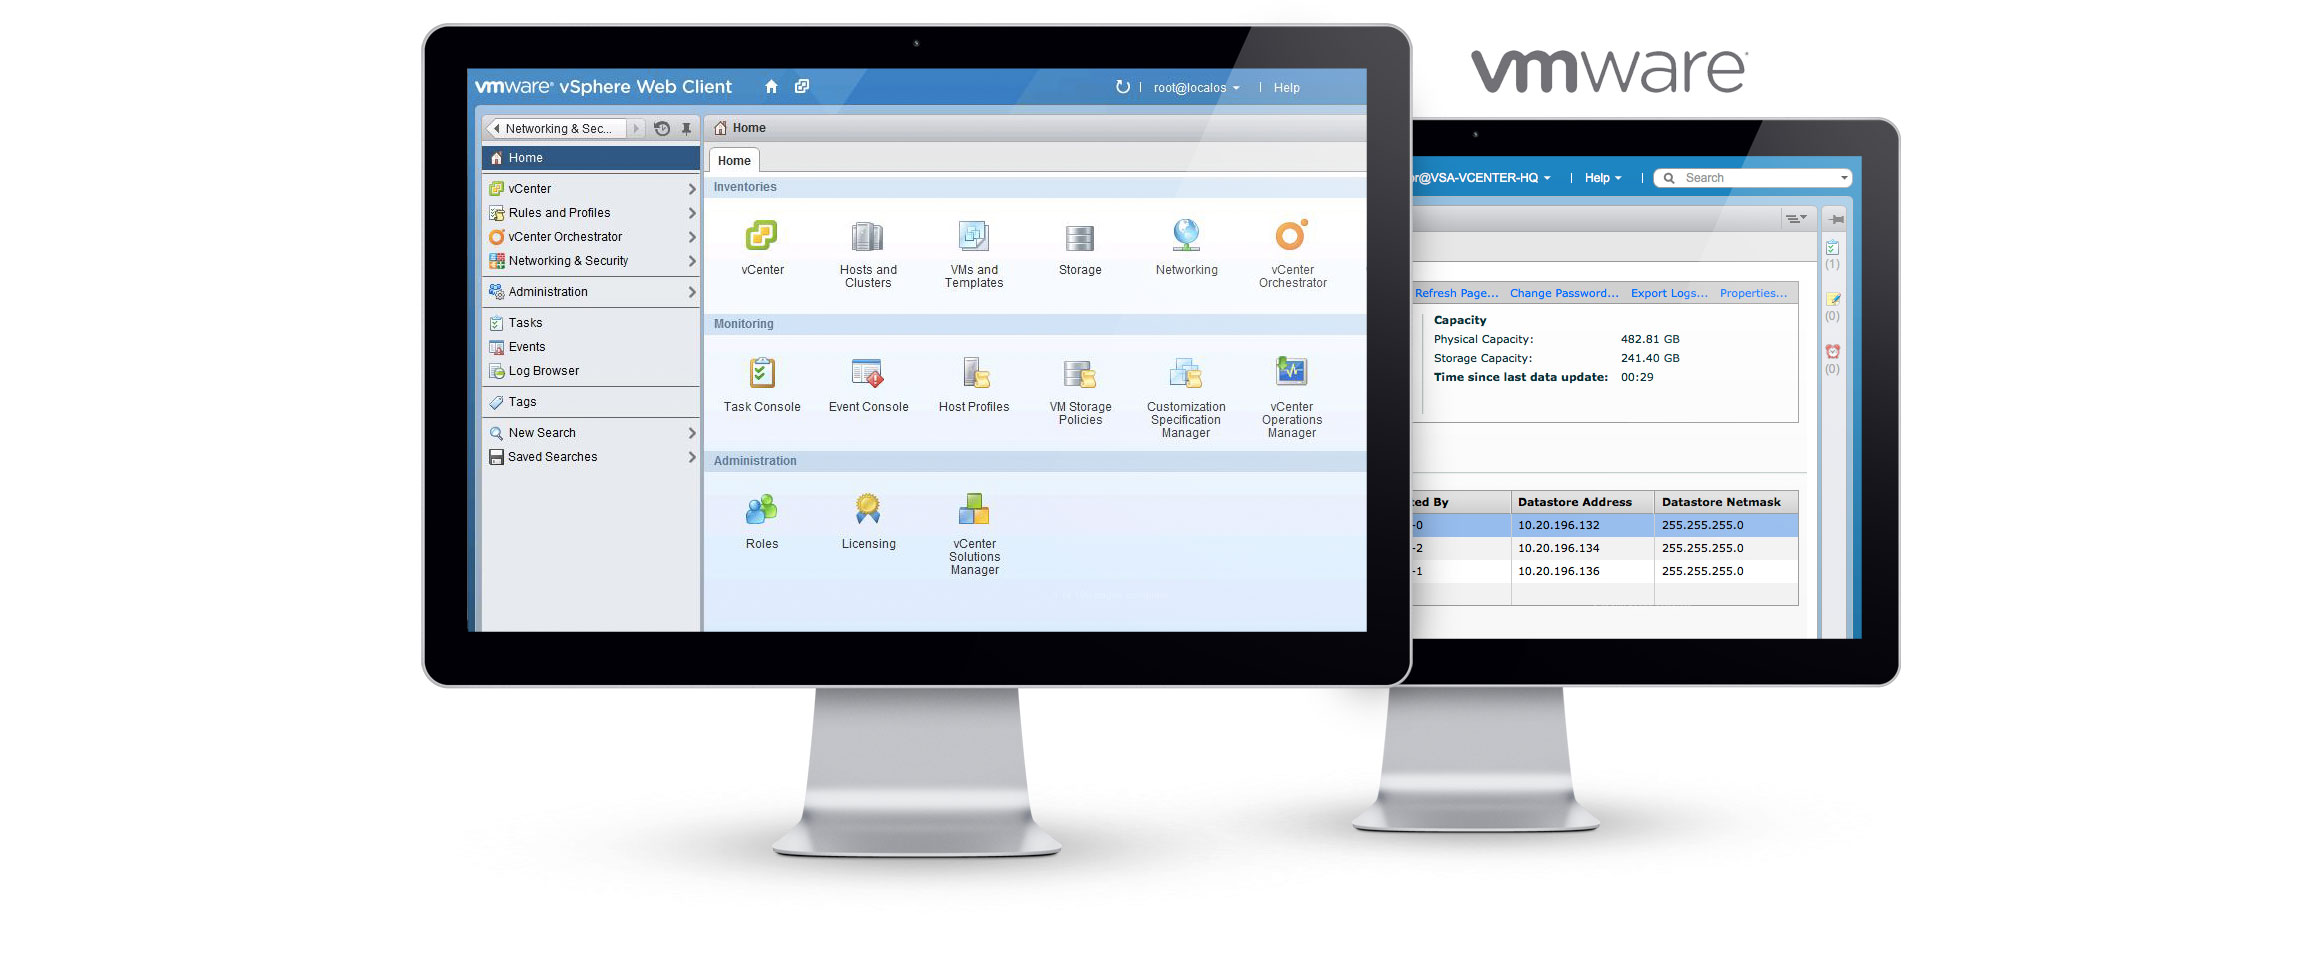 VMware | IT Virtualization